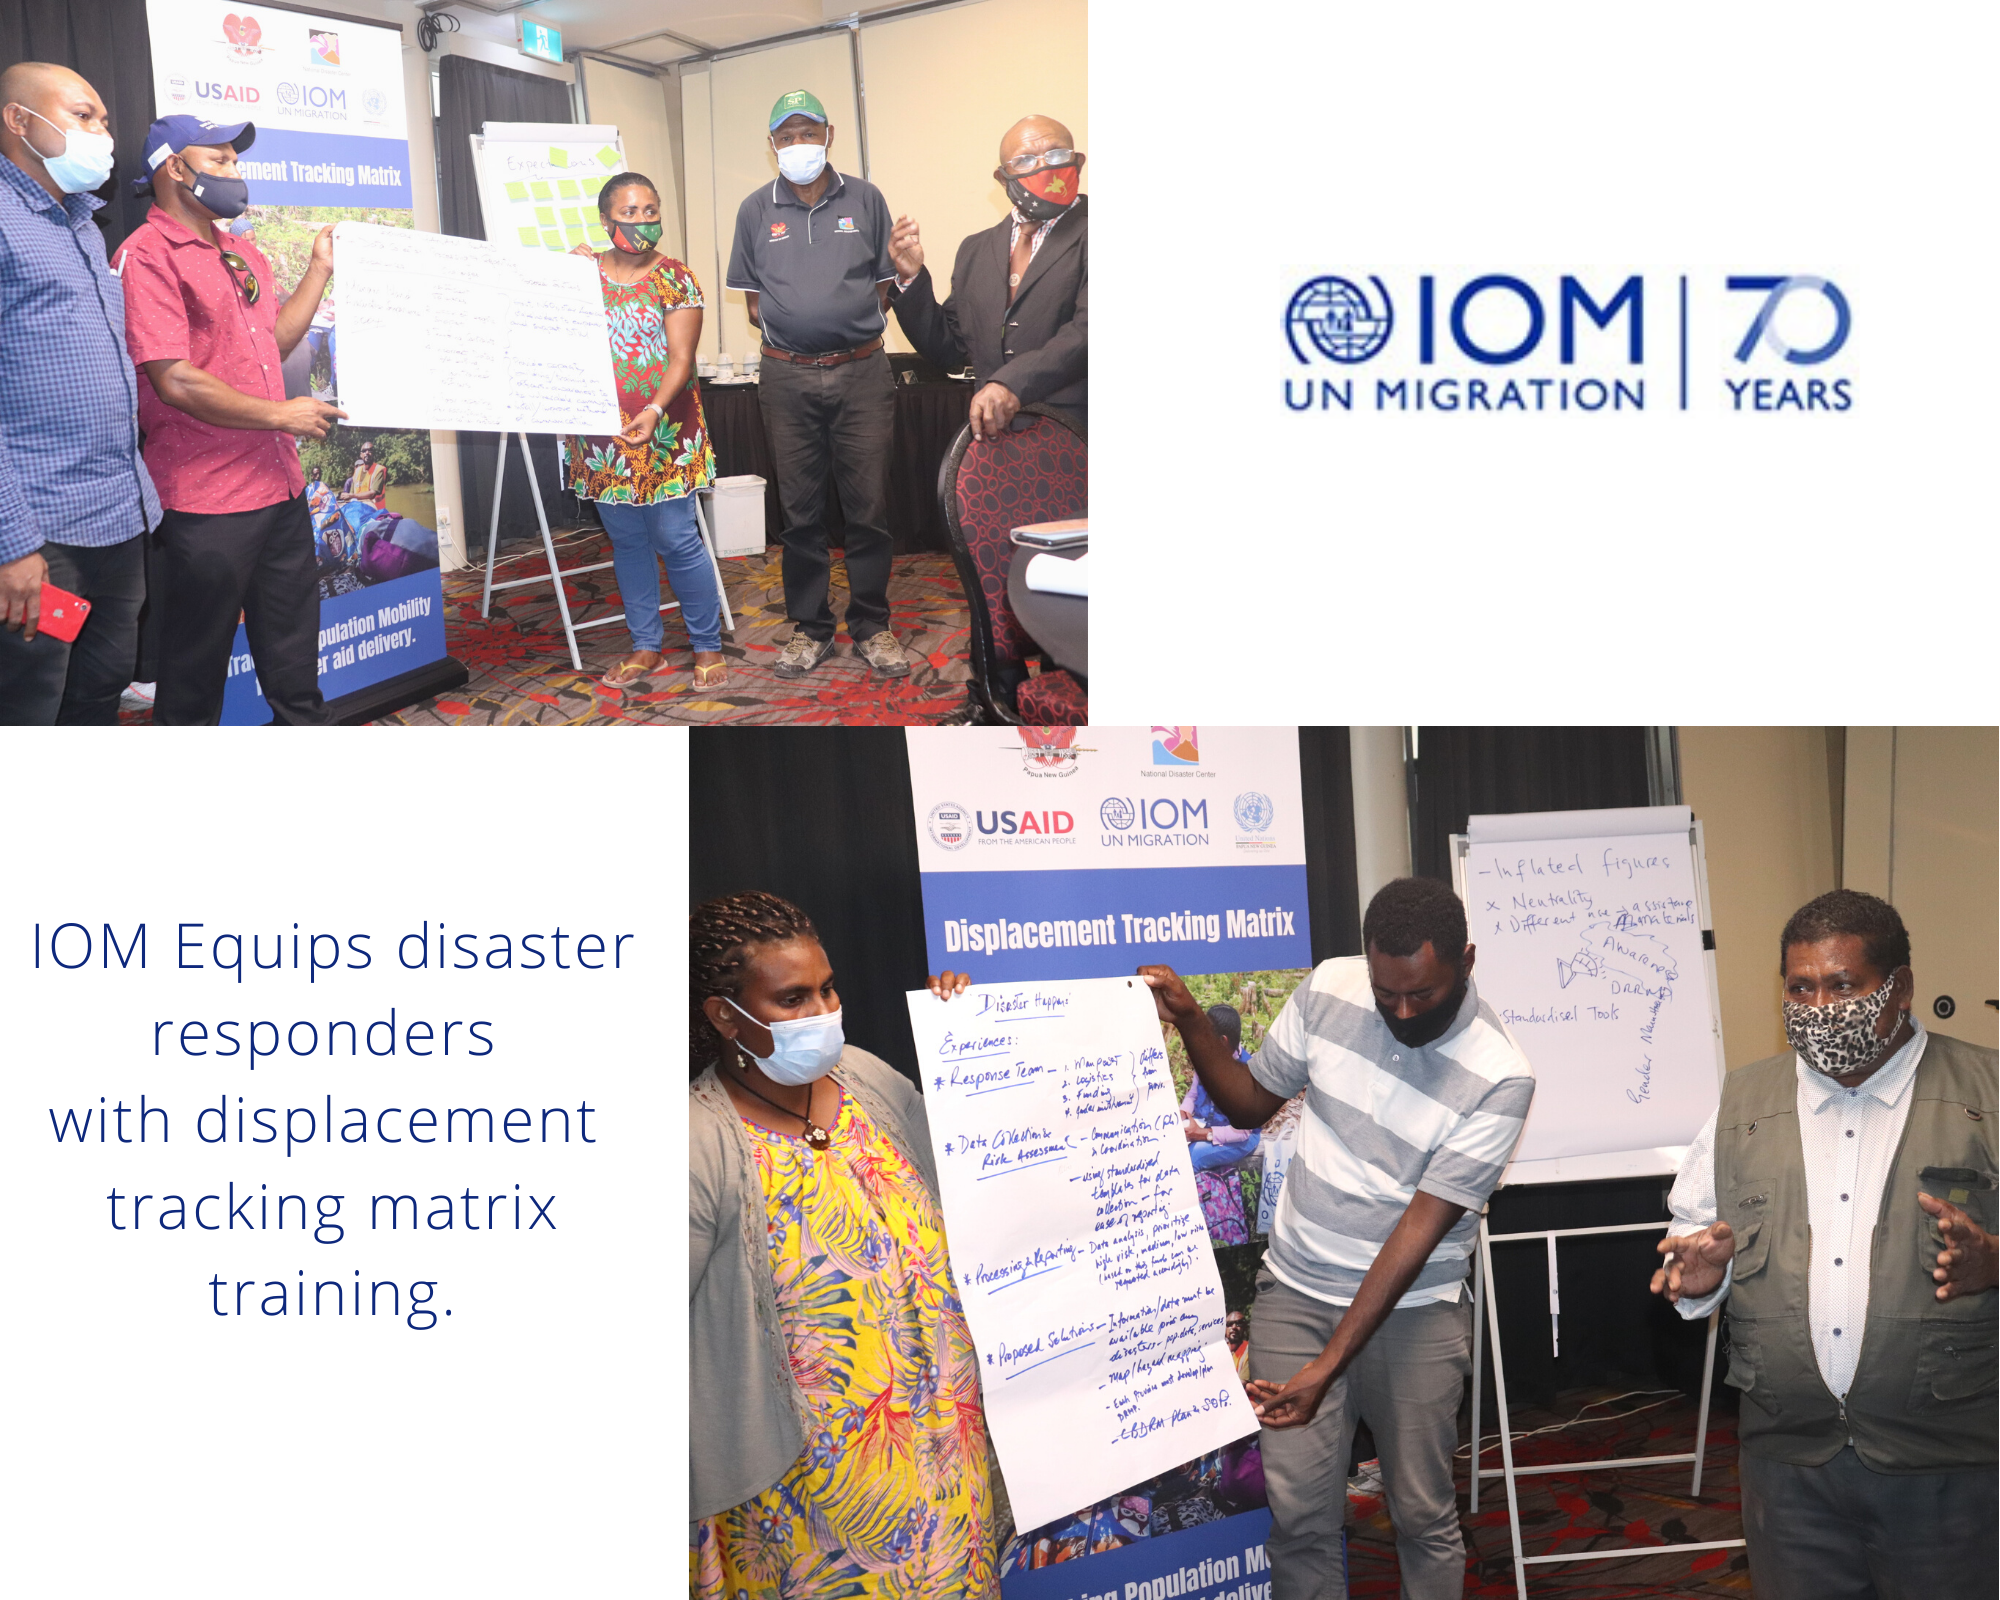 IOM Equips Disaster Responders with Displacement Tracking Matrix Training